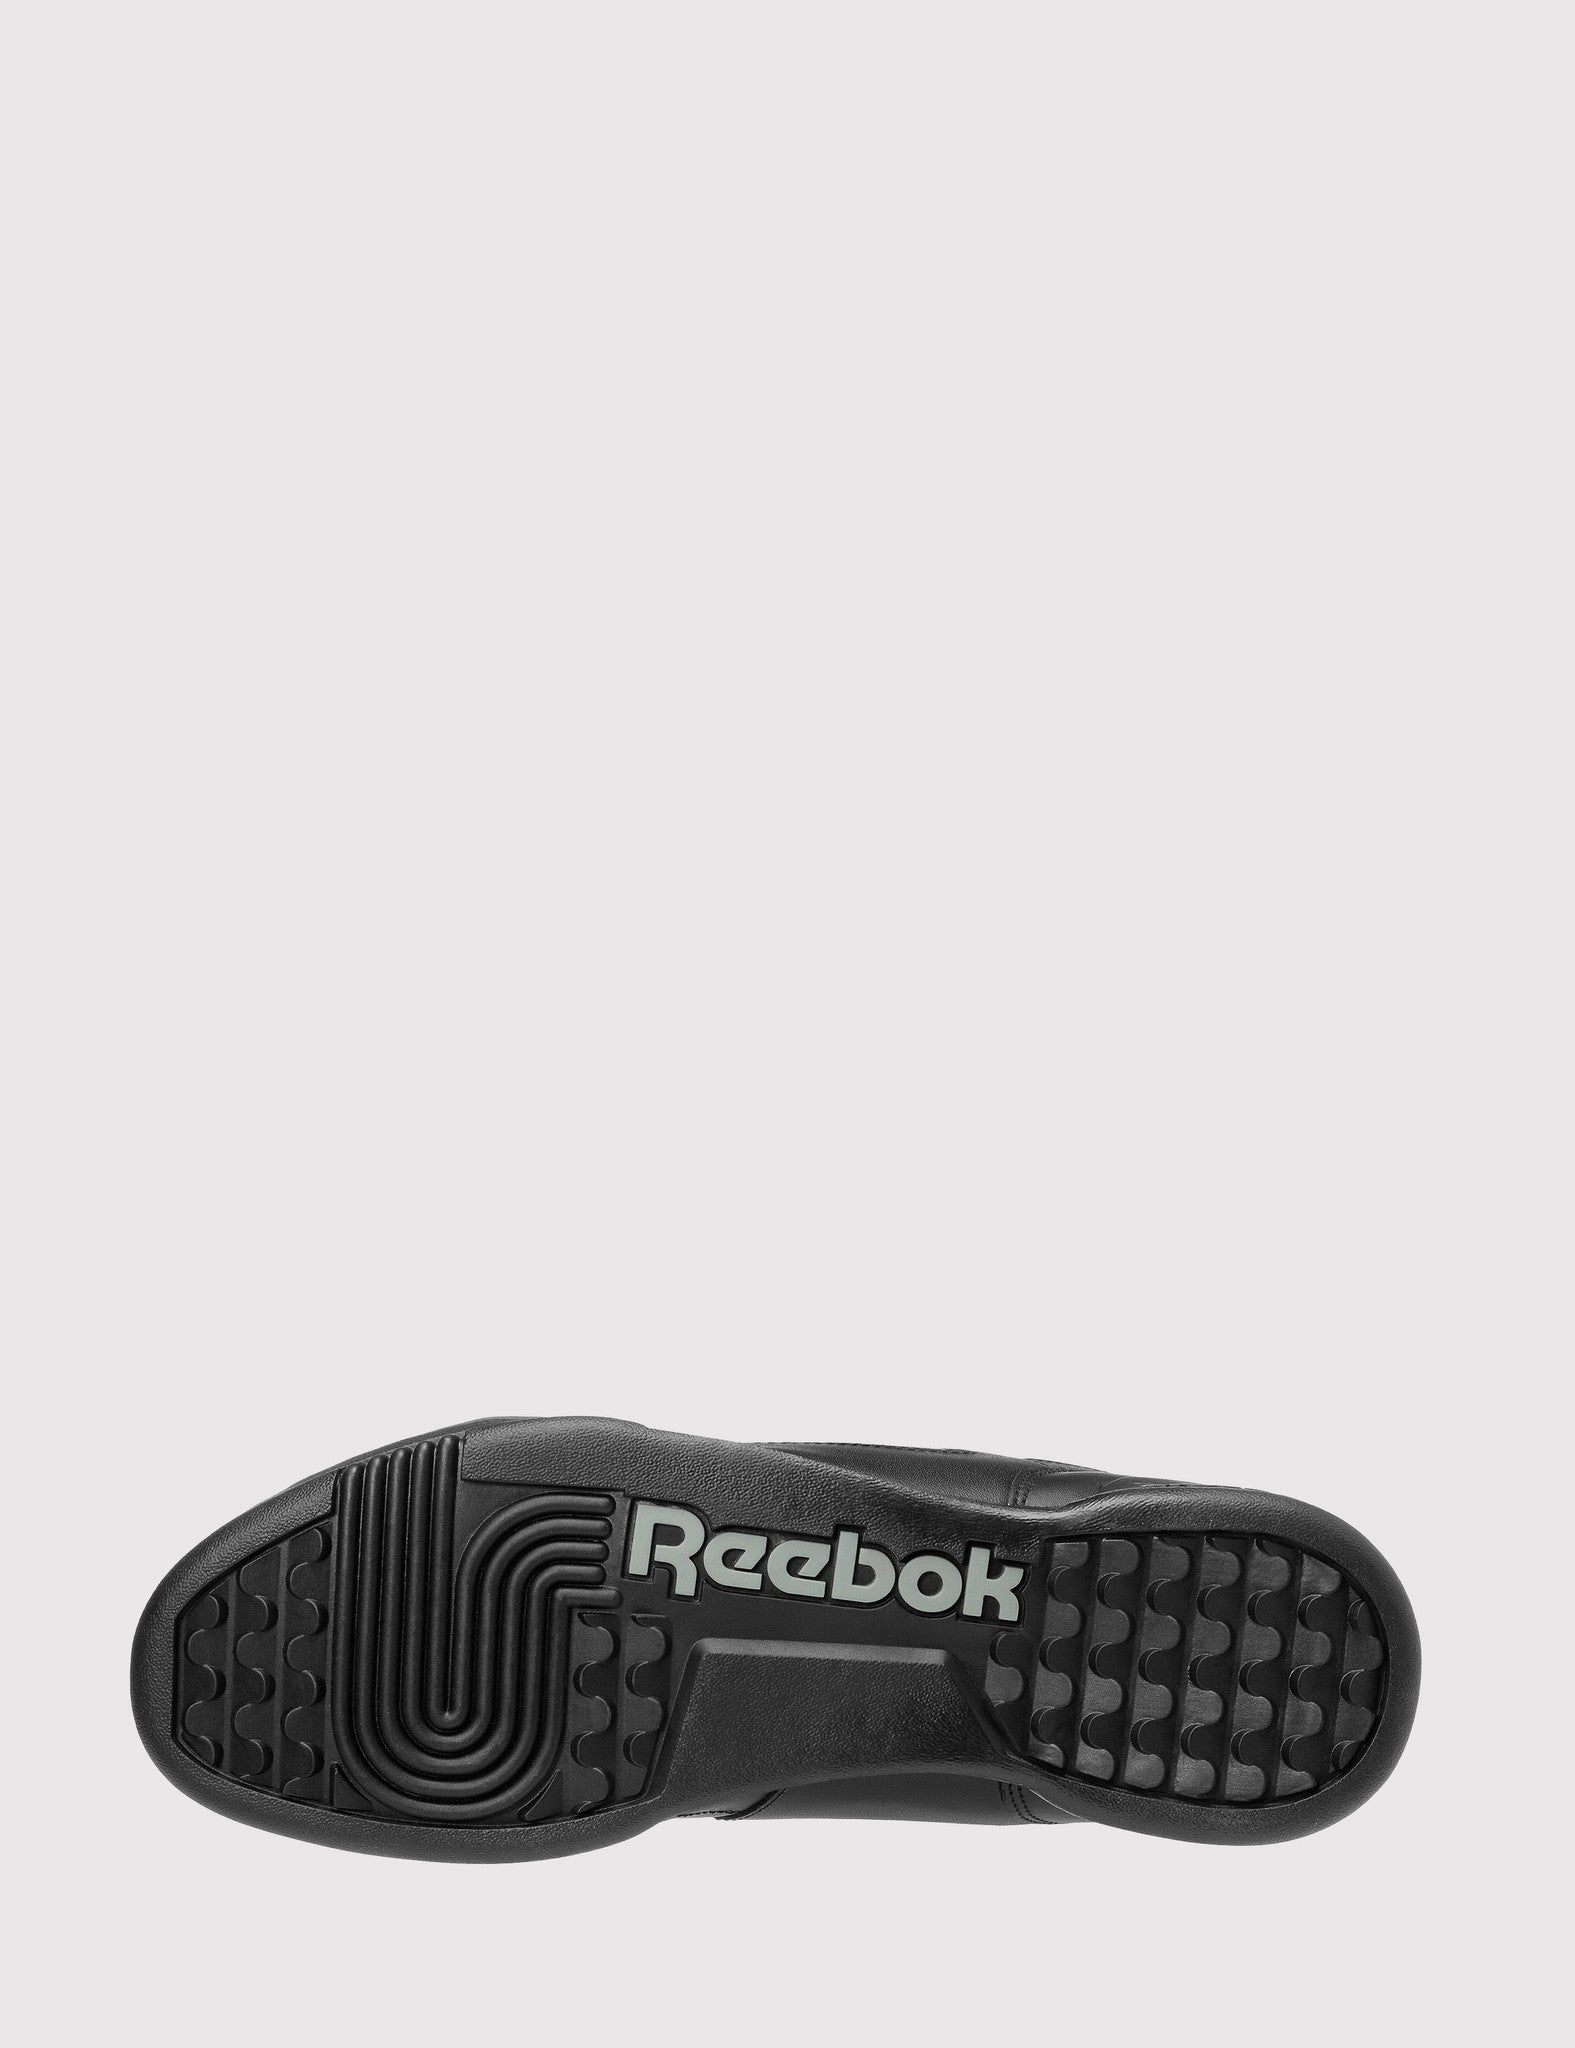 6885a76e25b Reebok Workout Plus (2760) - Black Charcoal